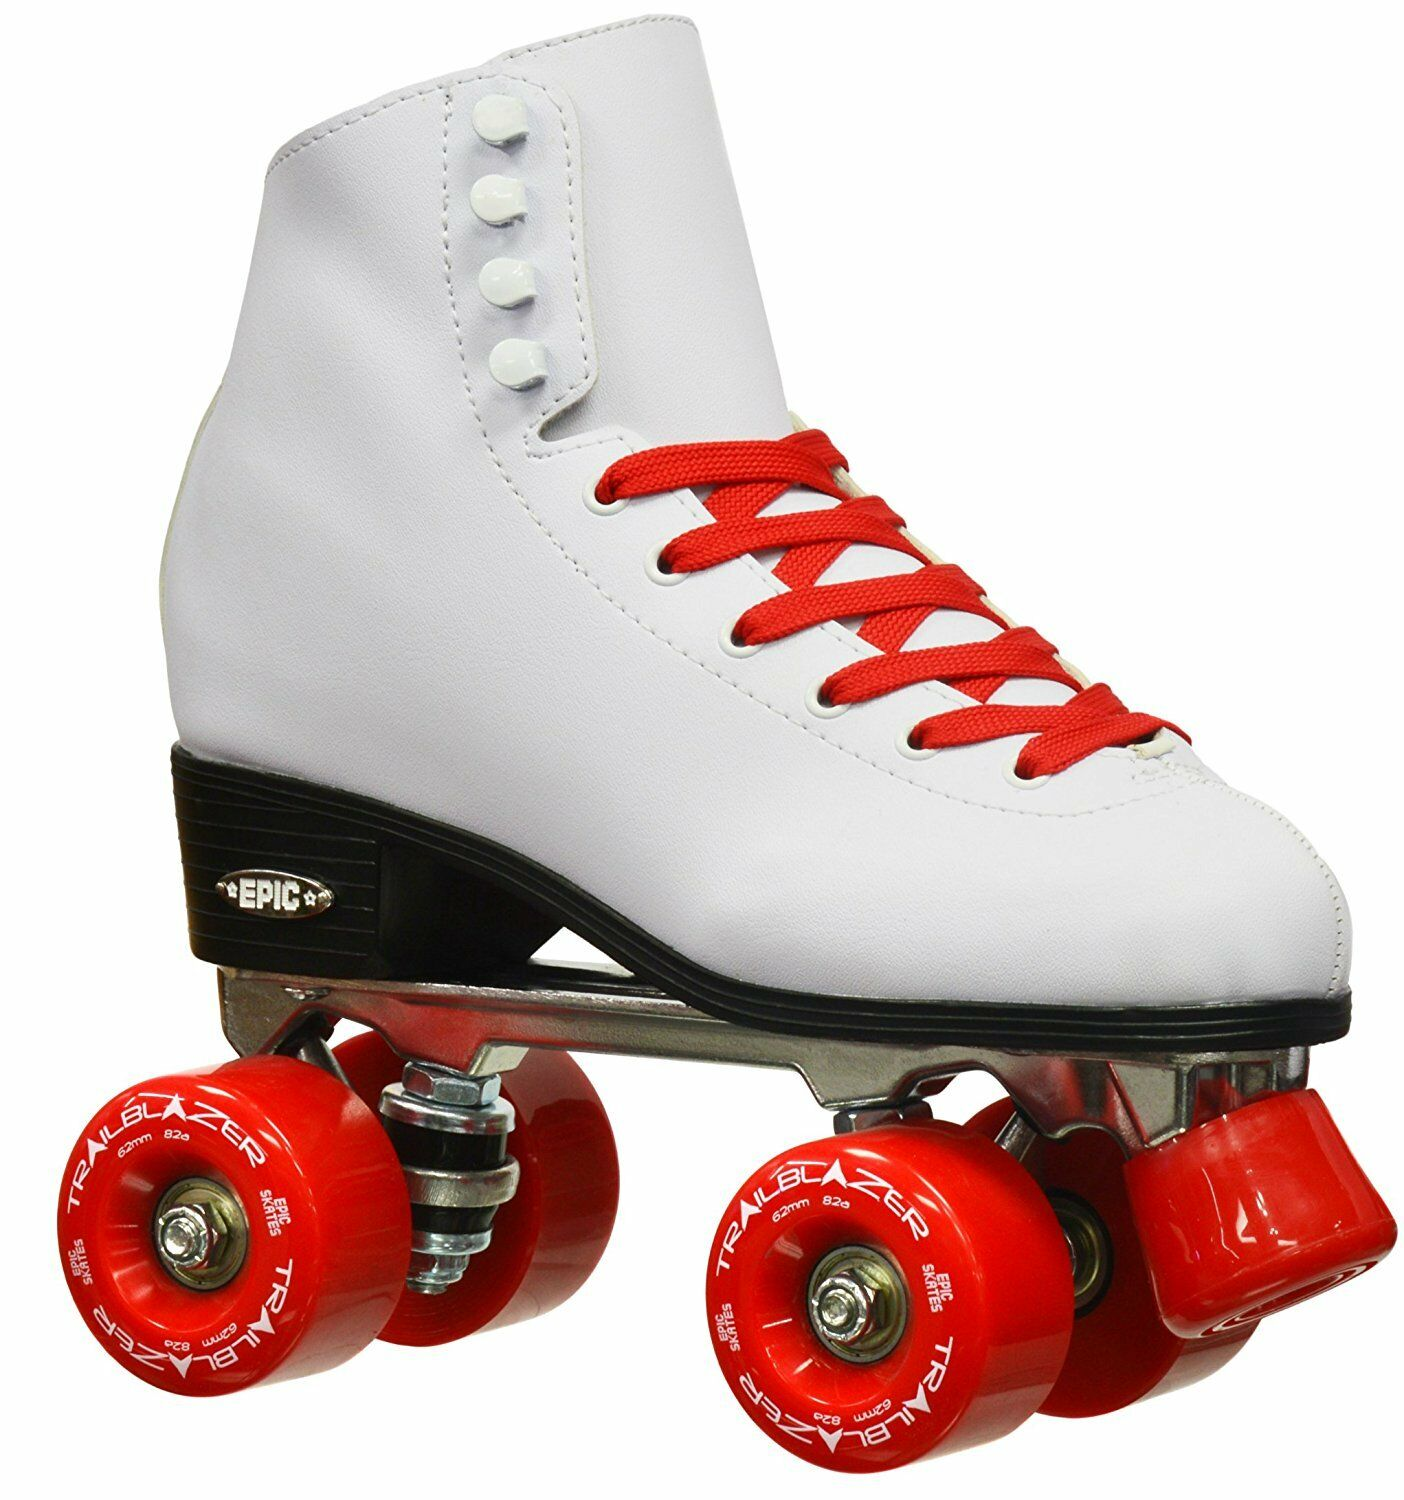 Epic S s Classic High-Top Quad Roller S s with  Red Wheels Size 10  wholesale price